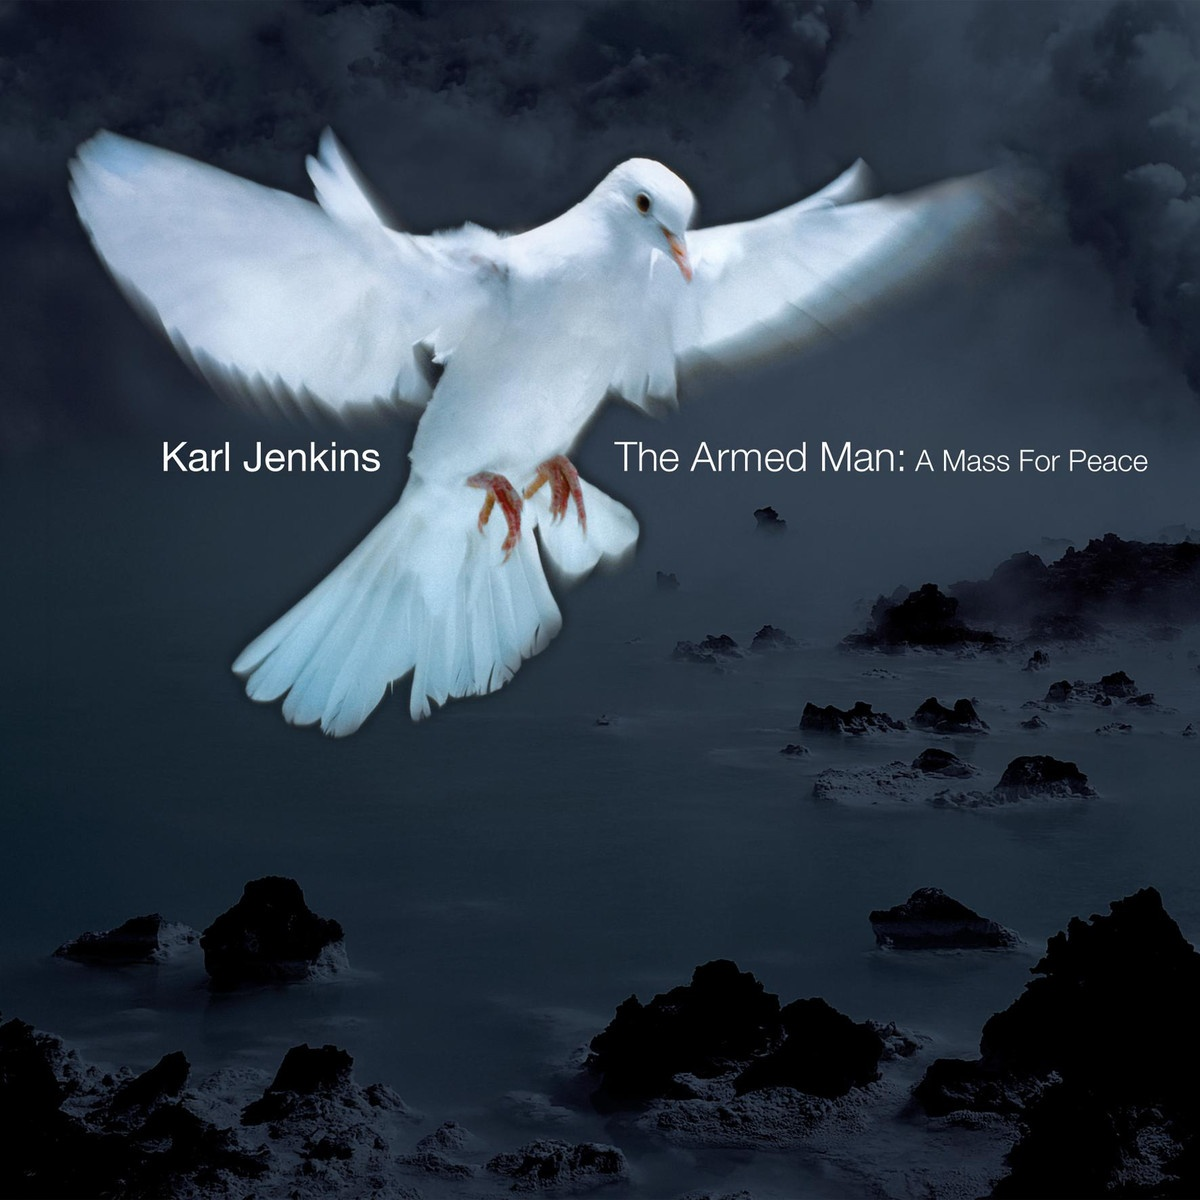 цена Karl Jenkins Karl Jenkins - The Armed Man: A Mass For Peace (2 Lp, 180 Gr) онлайн в 2017 году